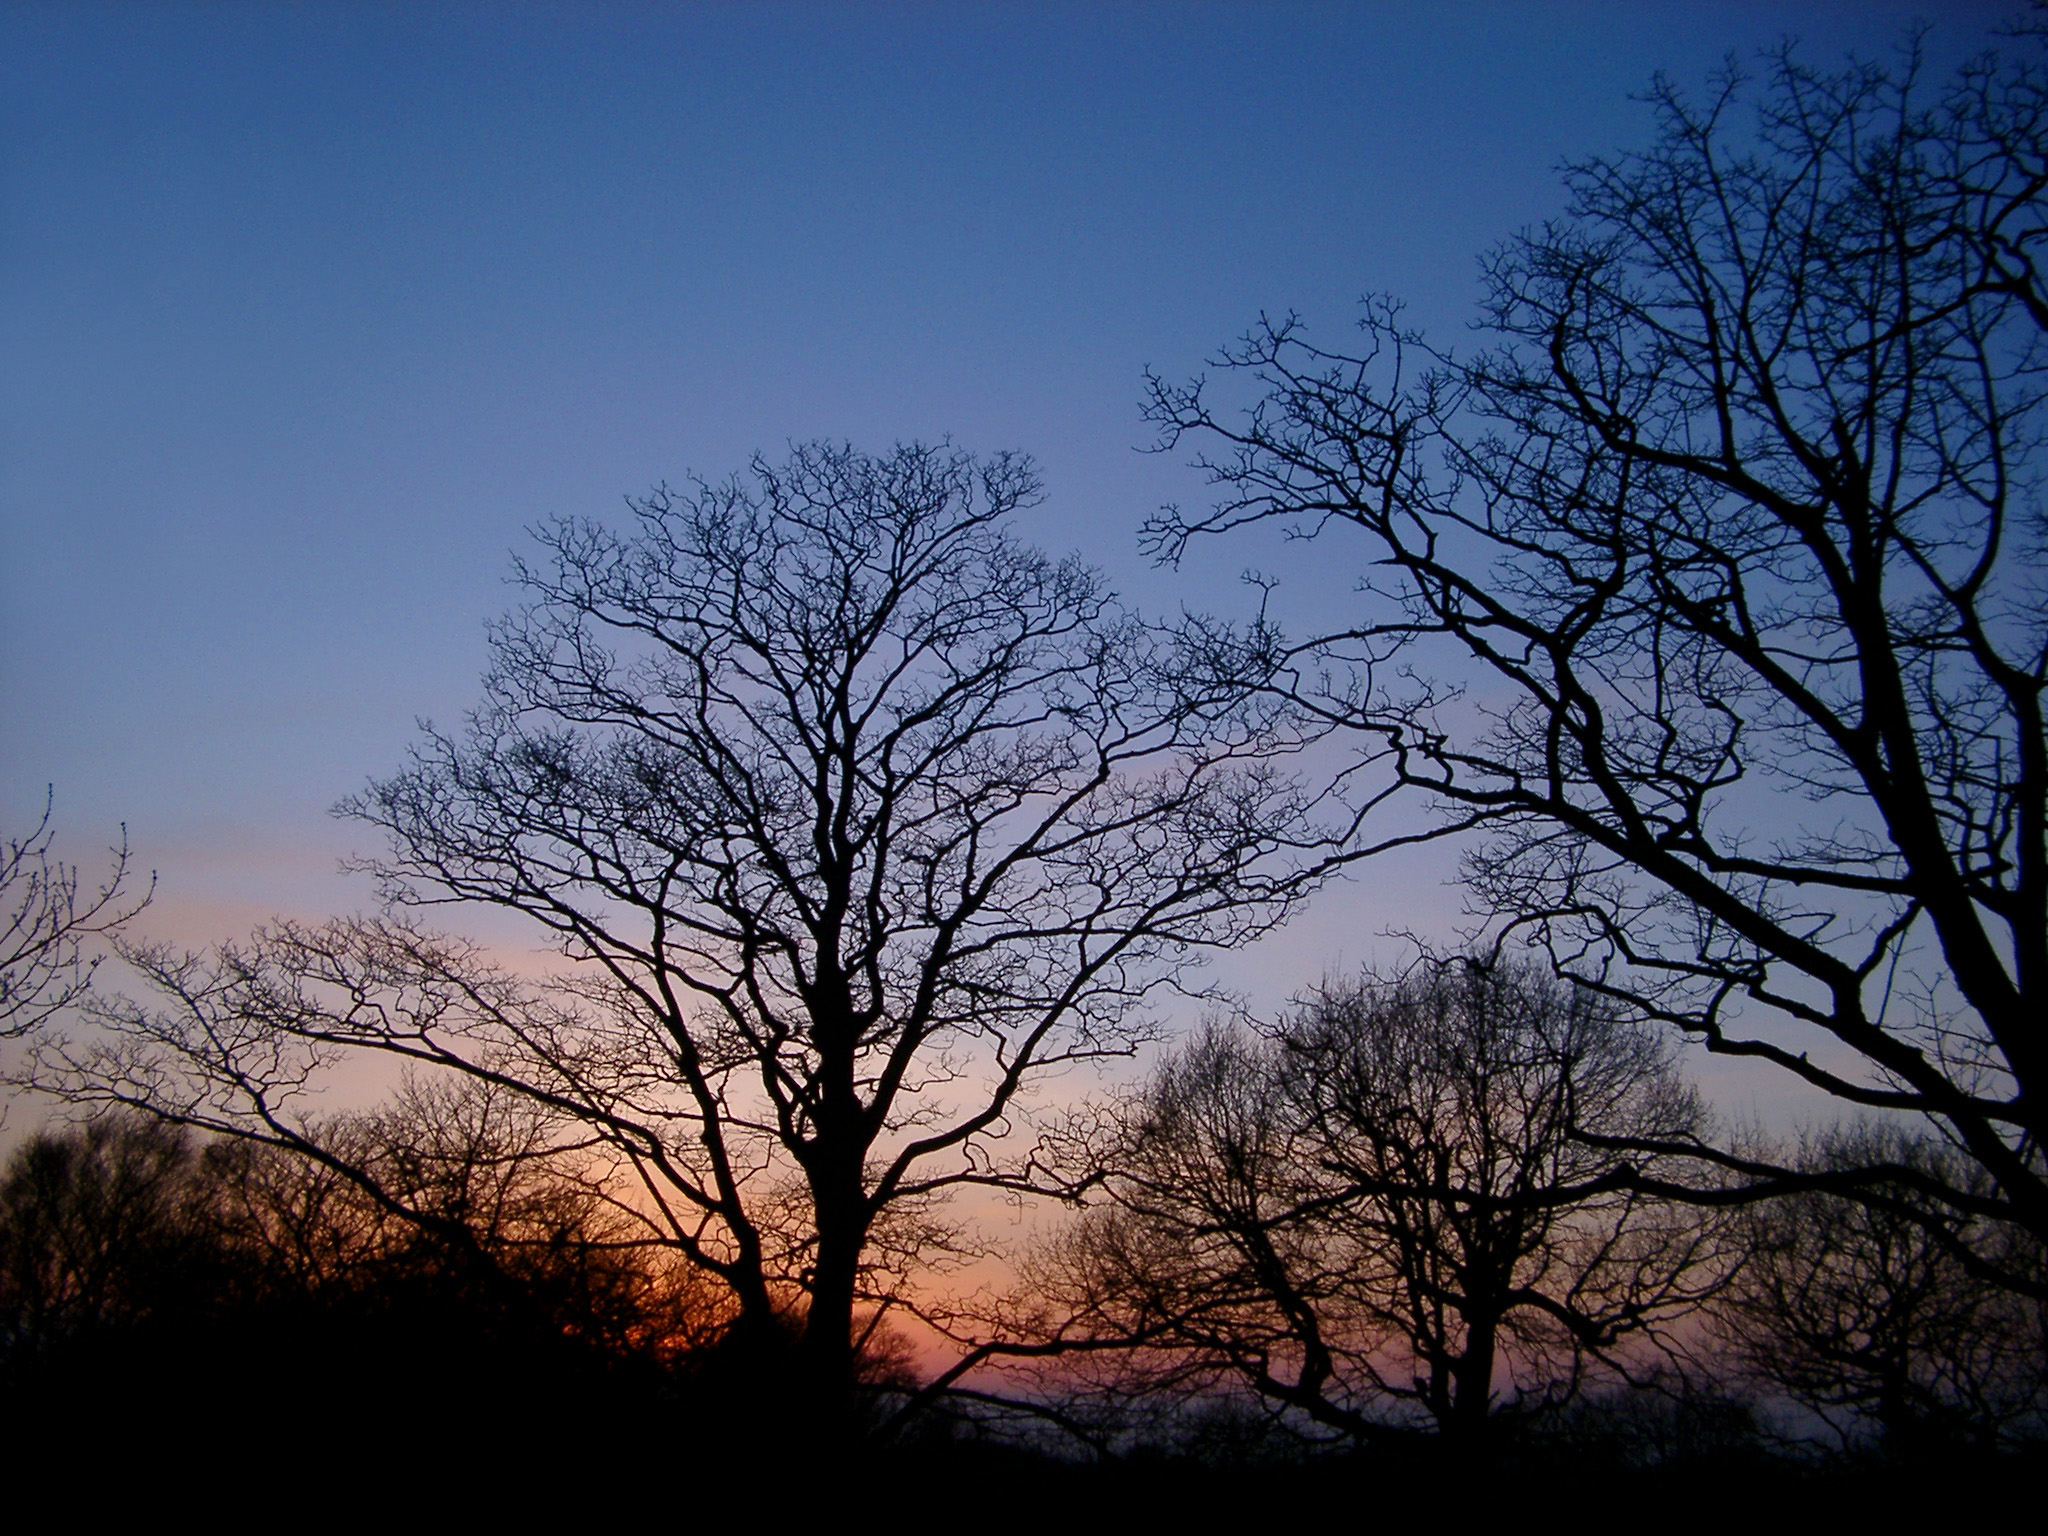 Serene scenic landscape with silhouettes of bare deciduous trees against the sky, at twilight